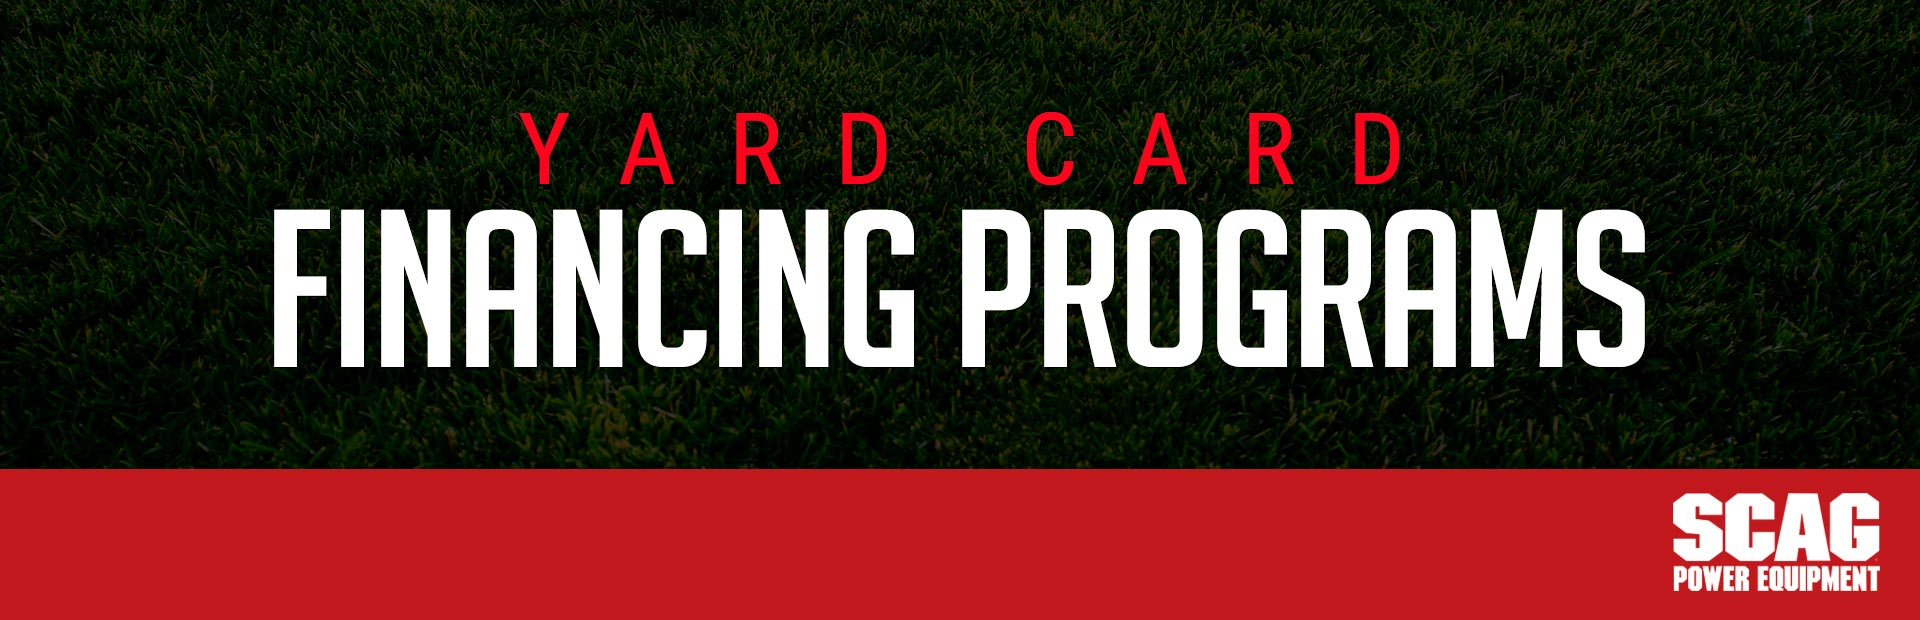 Scag: SCAG – Yard Card Financing Programs